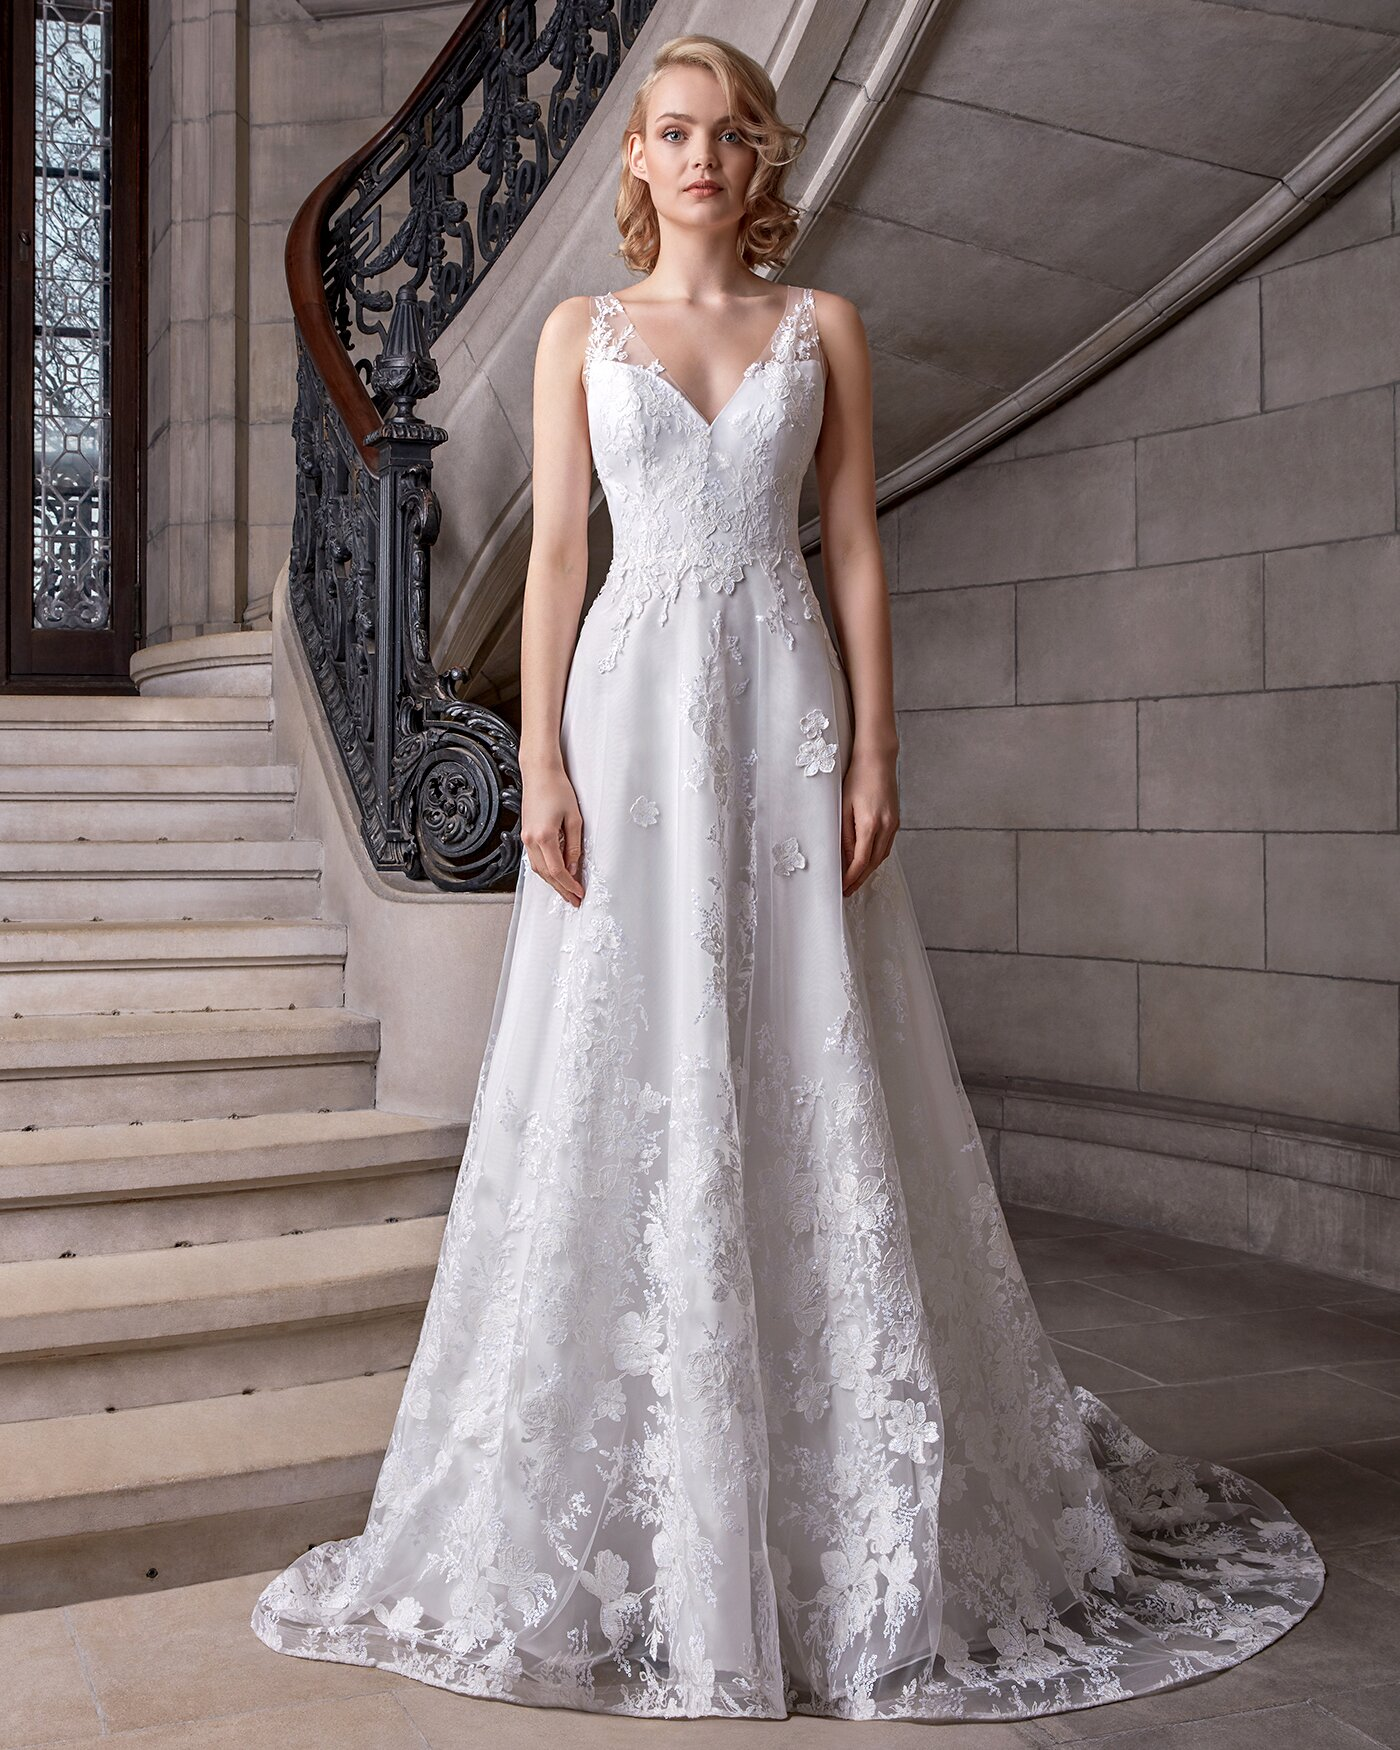 Sareh Nouri Spring 2020 Wedding Dress Collection Martha Stewart